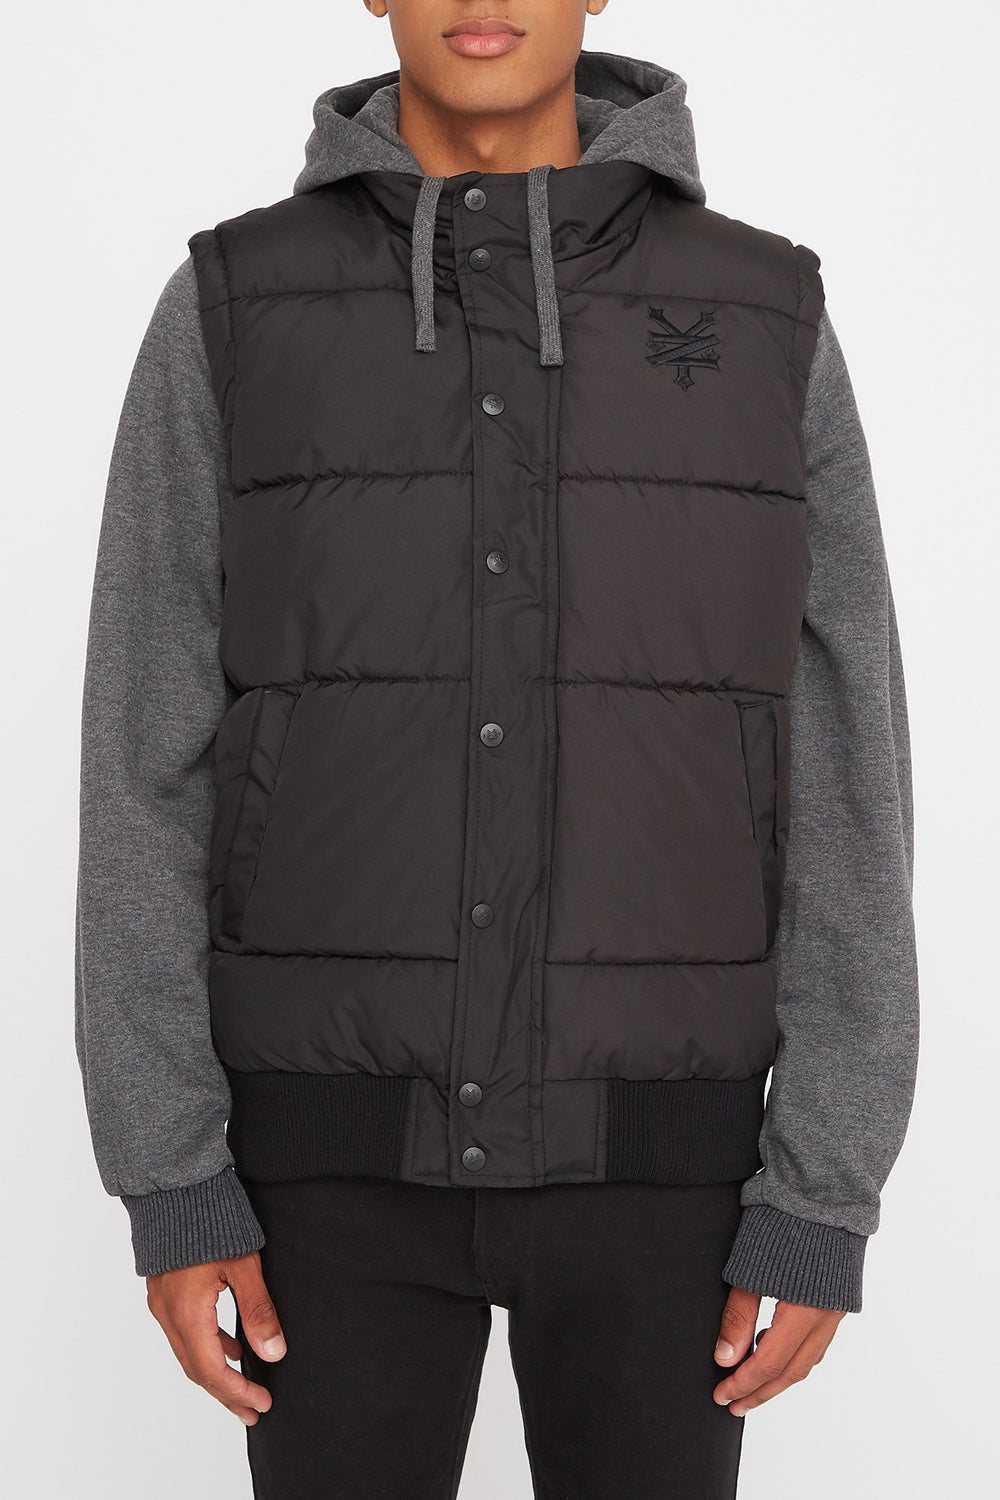 Zoo York Mens Hooded Puffer Vest Black